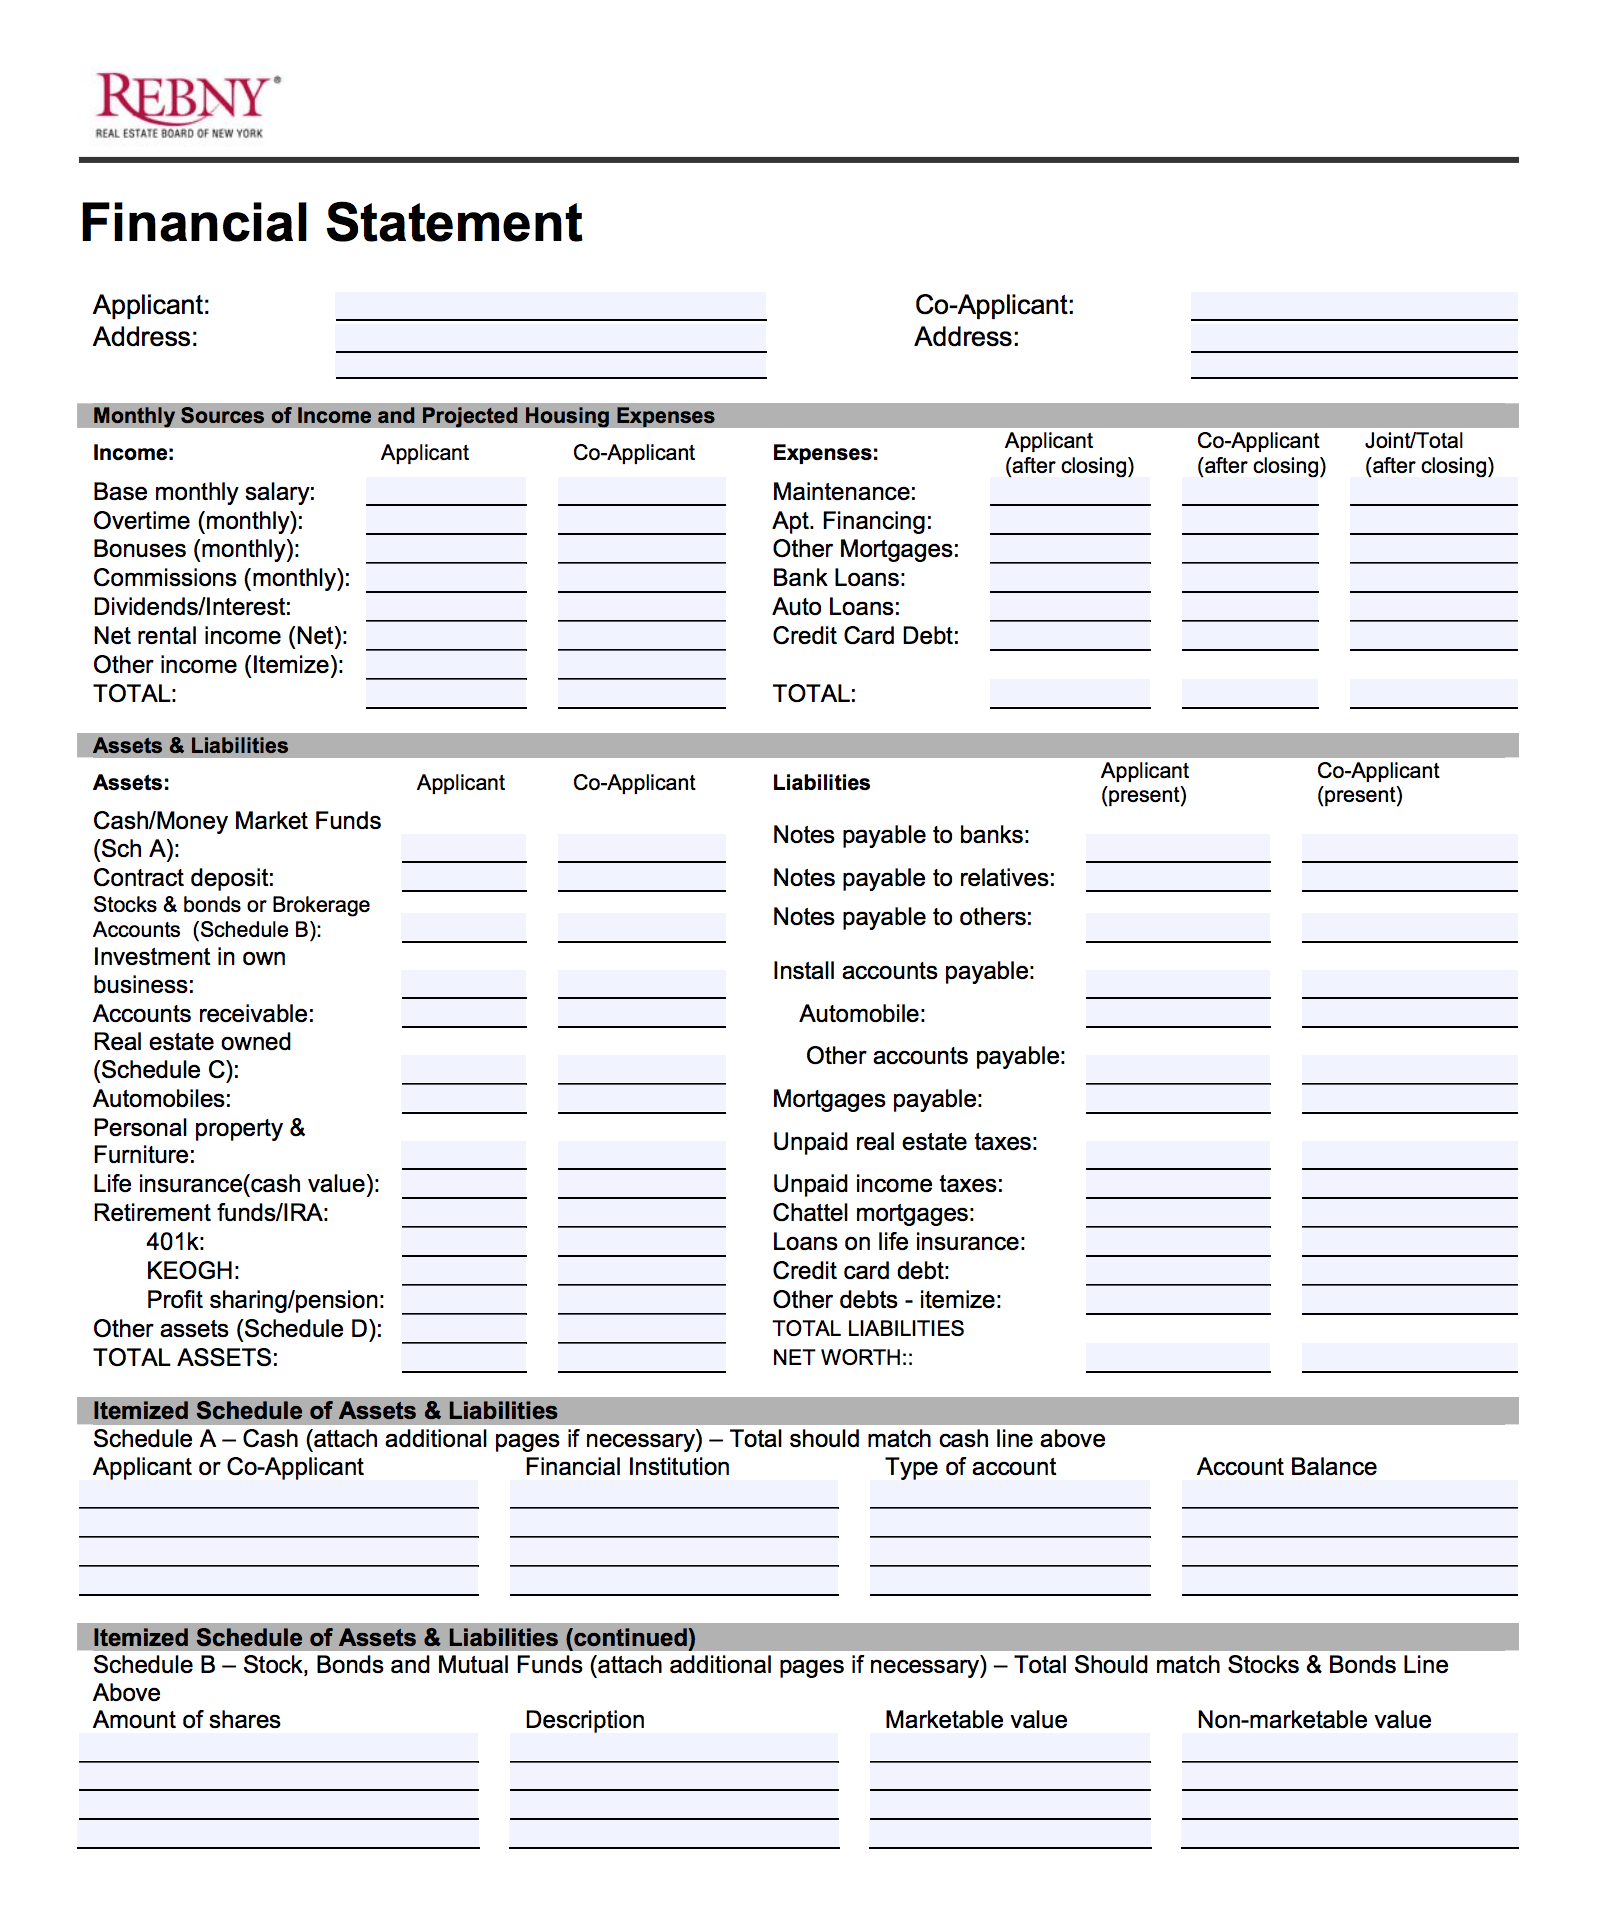 Asset And Liability Statement Template Rebny Financial Statement Form Instructions  Financial Statement